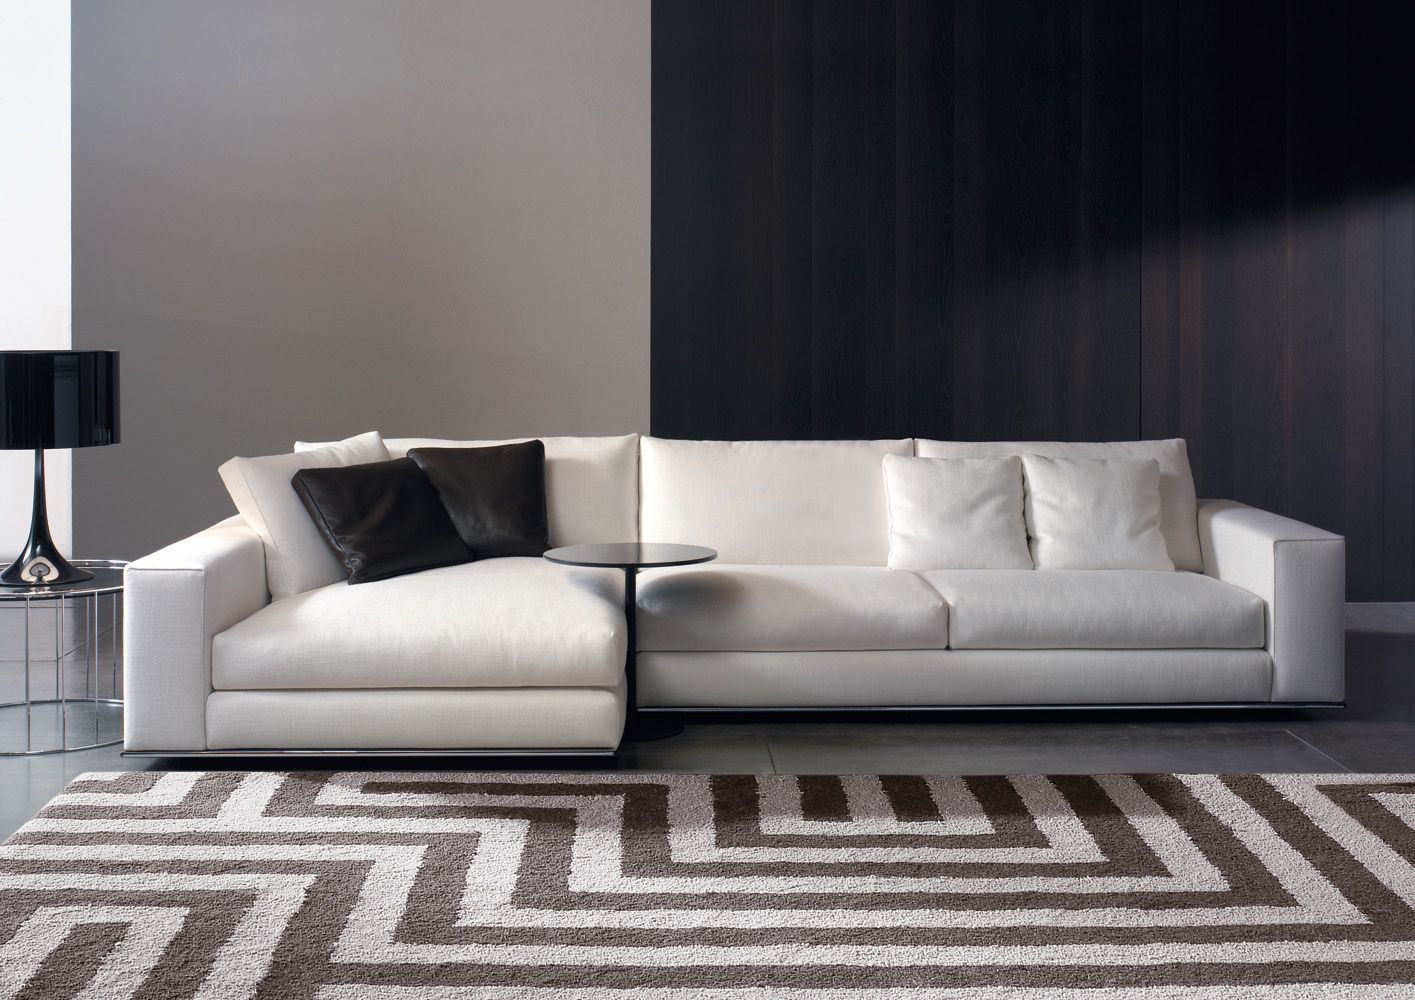 Hamilton Sofa By Minotti This Looks More Comfortable Than The